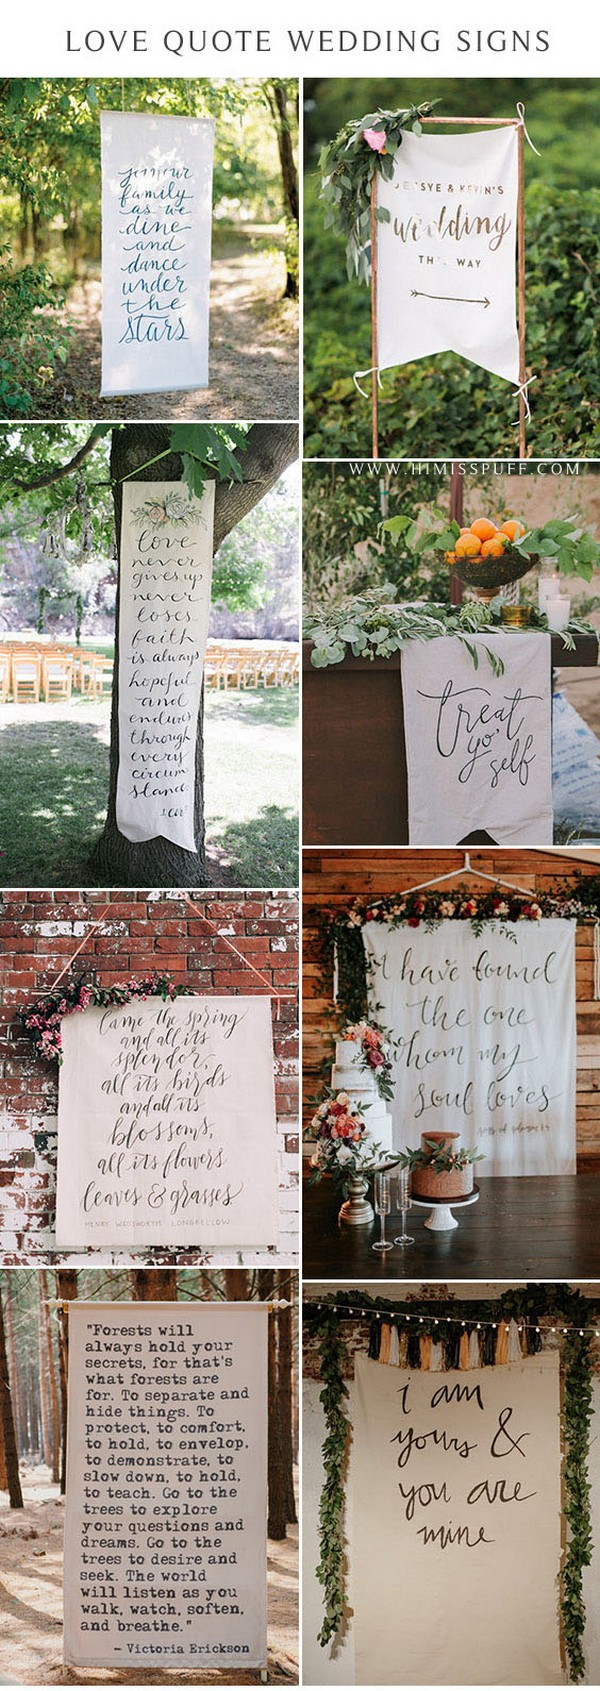 wedding Fabric Signs love quote sign Wedding Wall Best Day Ever wedding decor ideas